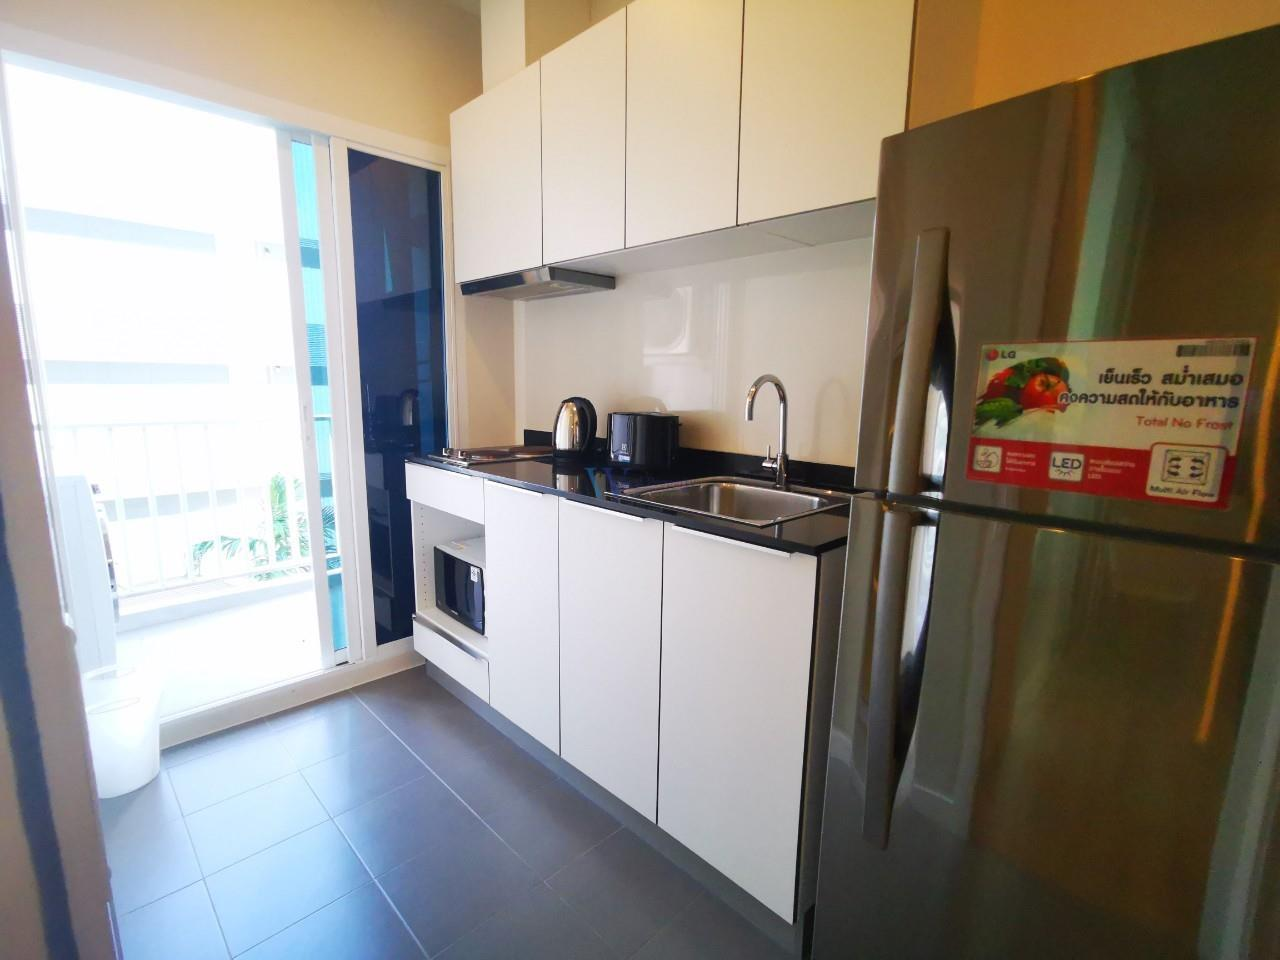 W Real Property Agency's 1 Bedroom Condo for rent in The Base Downtown Phuket, Wichit, Phuket 17